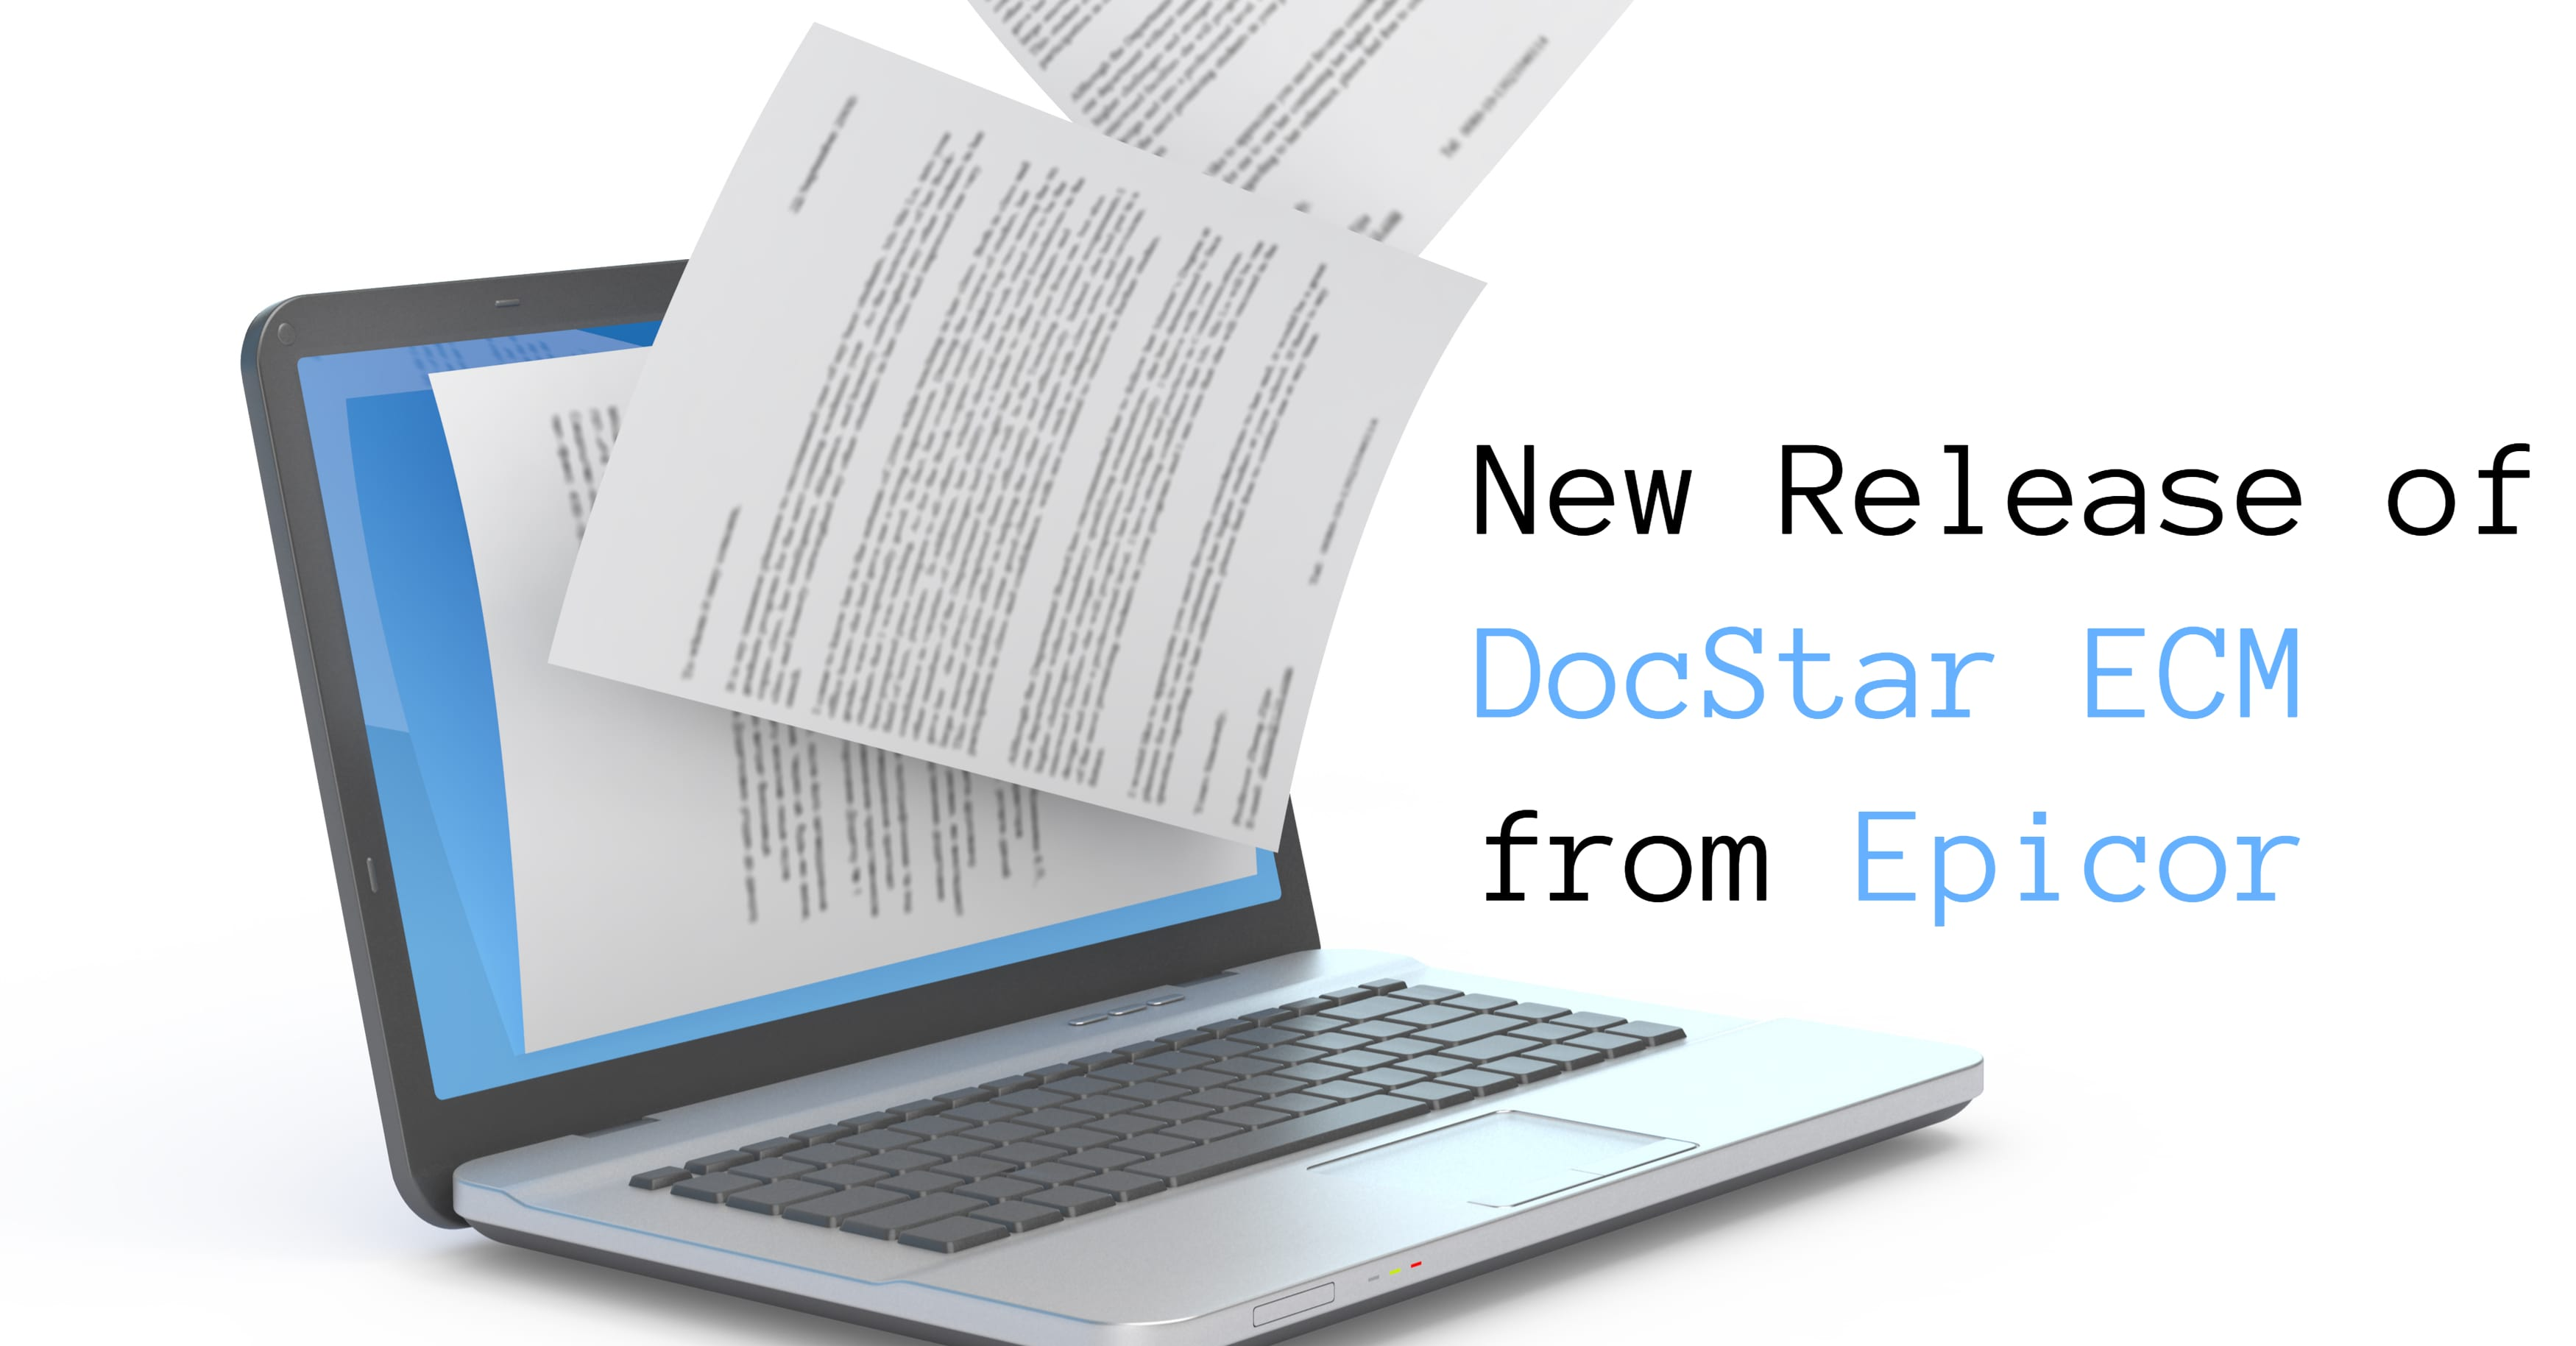 Epicor Announces New Release of DocStar ECM